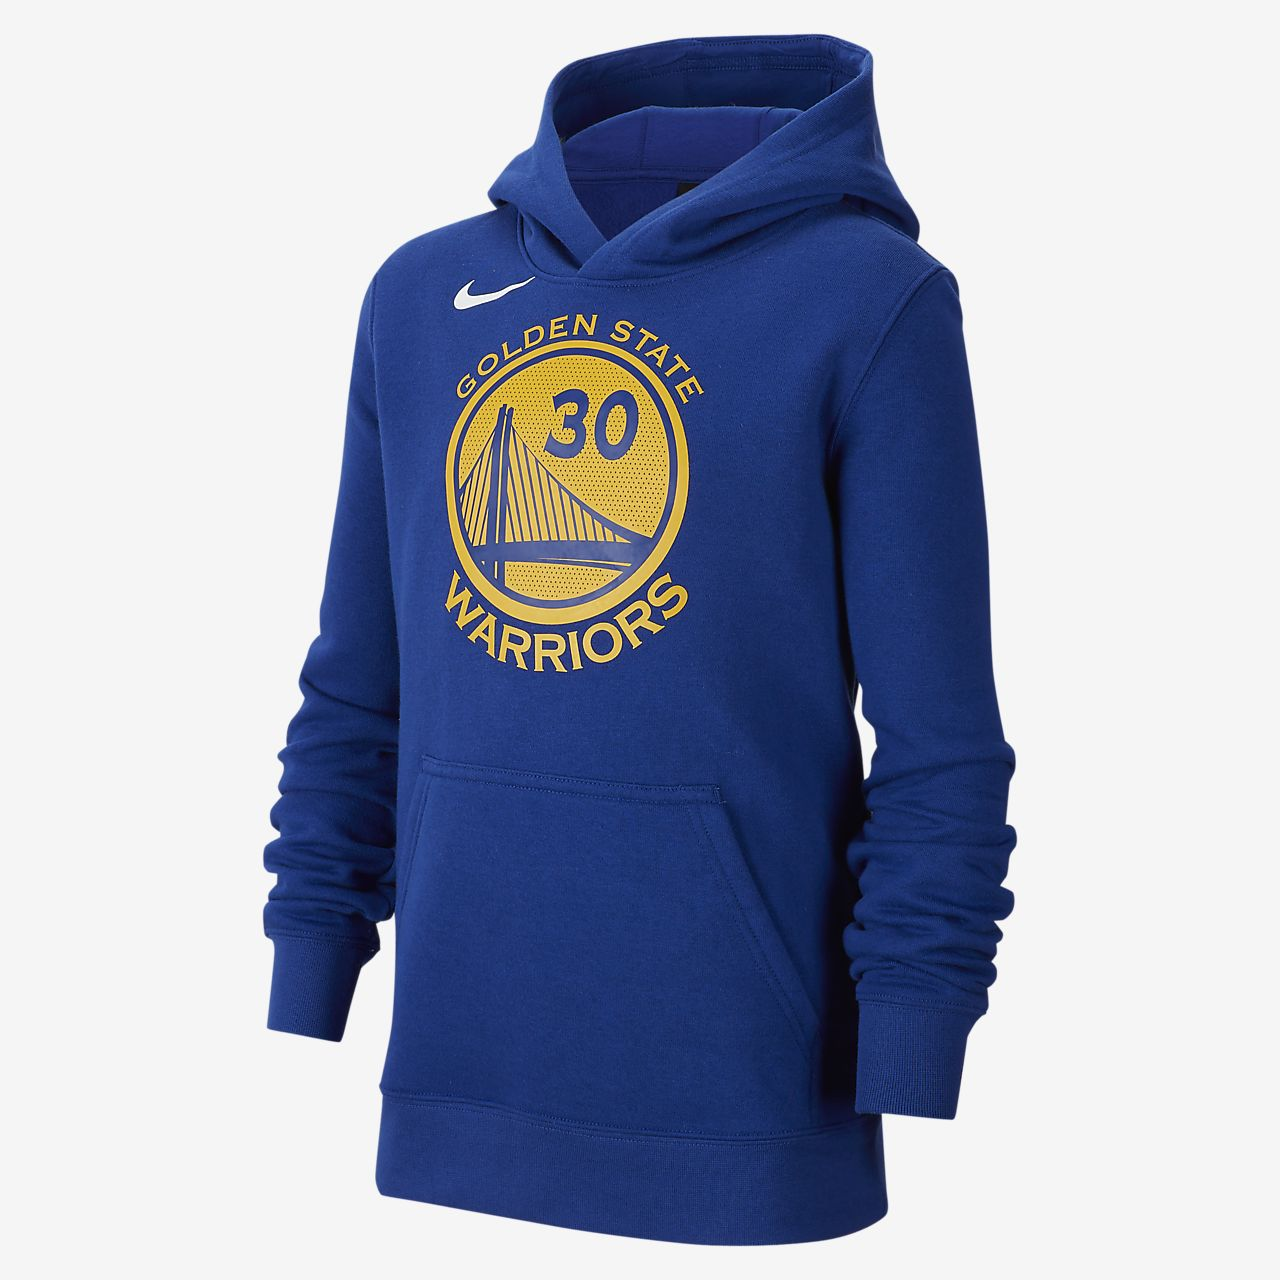 steph curry kids jersey